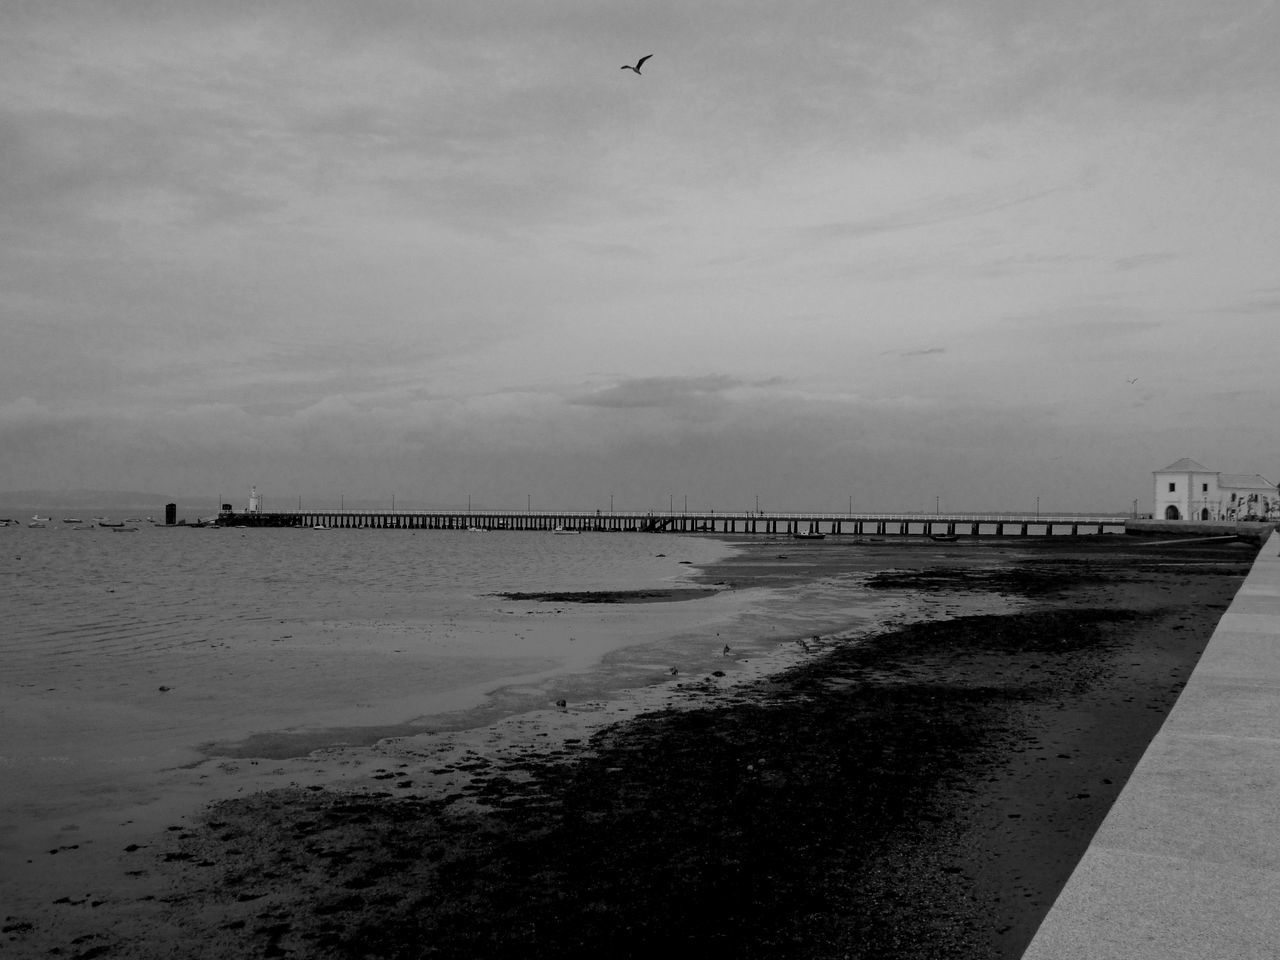 sea, water, bird, beach, nature, sky, tranquility, tranquil scene, horizon over water, outdoors, day, beauty in nature, flying, scenics, animal themes, no people, architecture